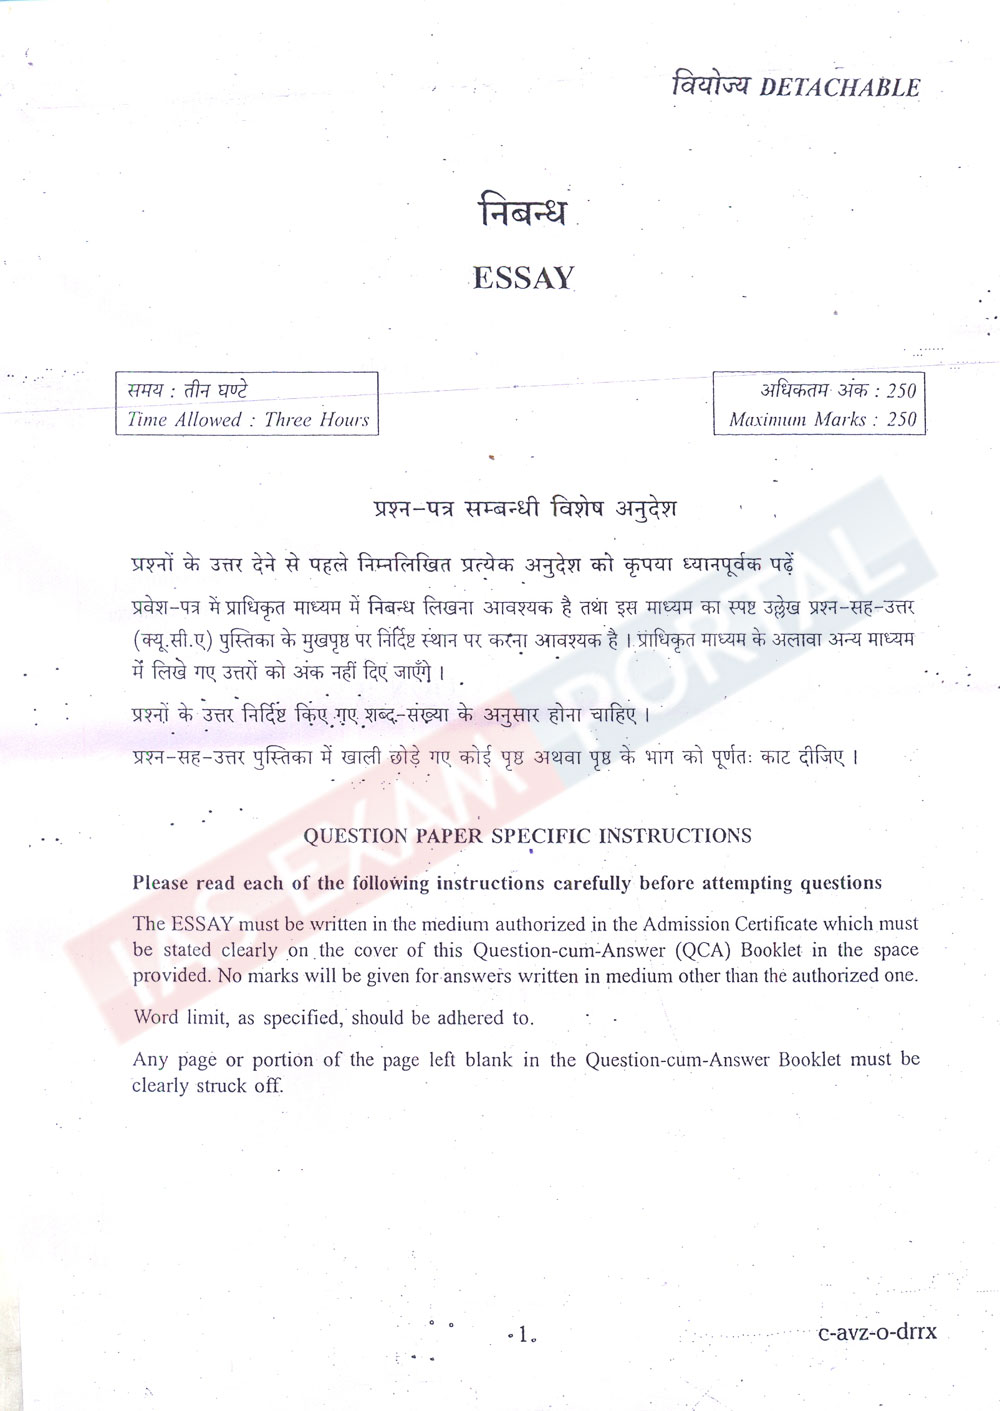 Business Law Essays  Examples Of Thesis Statements For Narrative Essays also Thesis Statement For Descriptive Essay Download Upsc Ias Mains  Essay Compulsory Question  English Essay Books